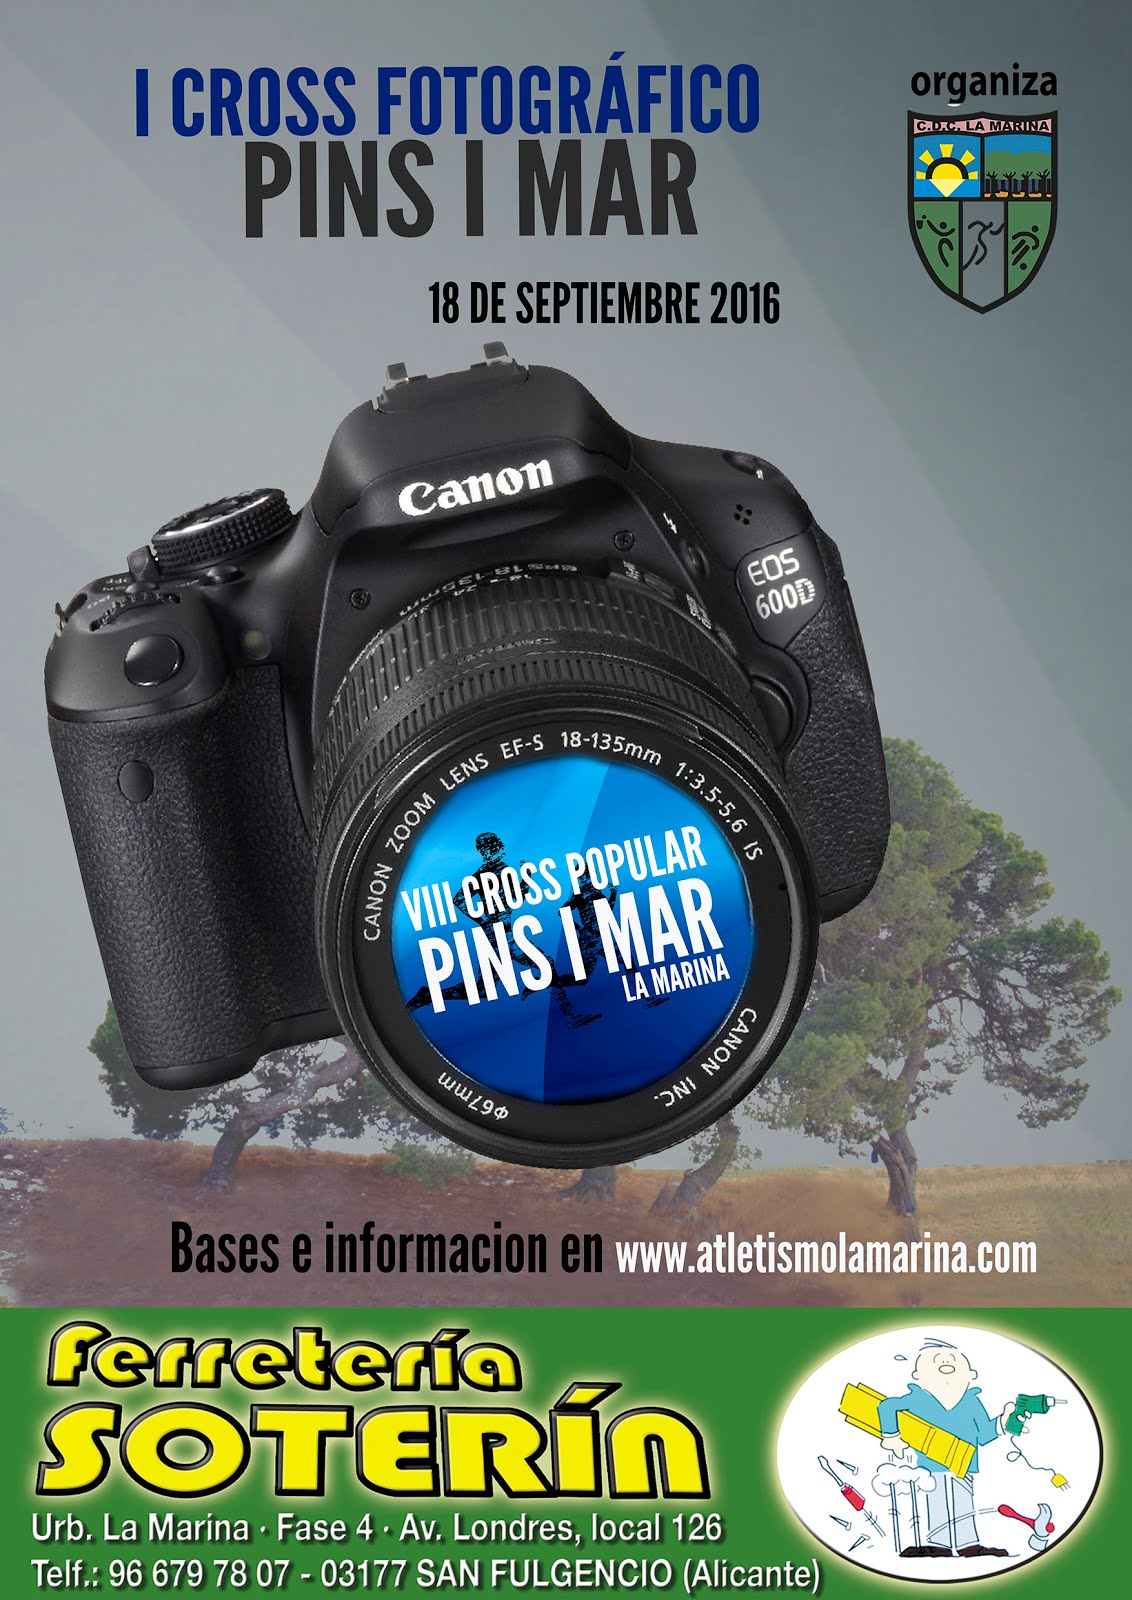 I CROSS FOTOGRAFICO PINS I MAR 2016